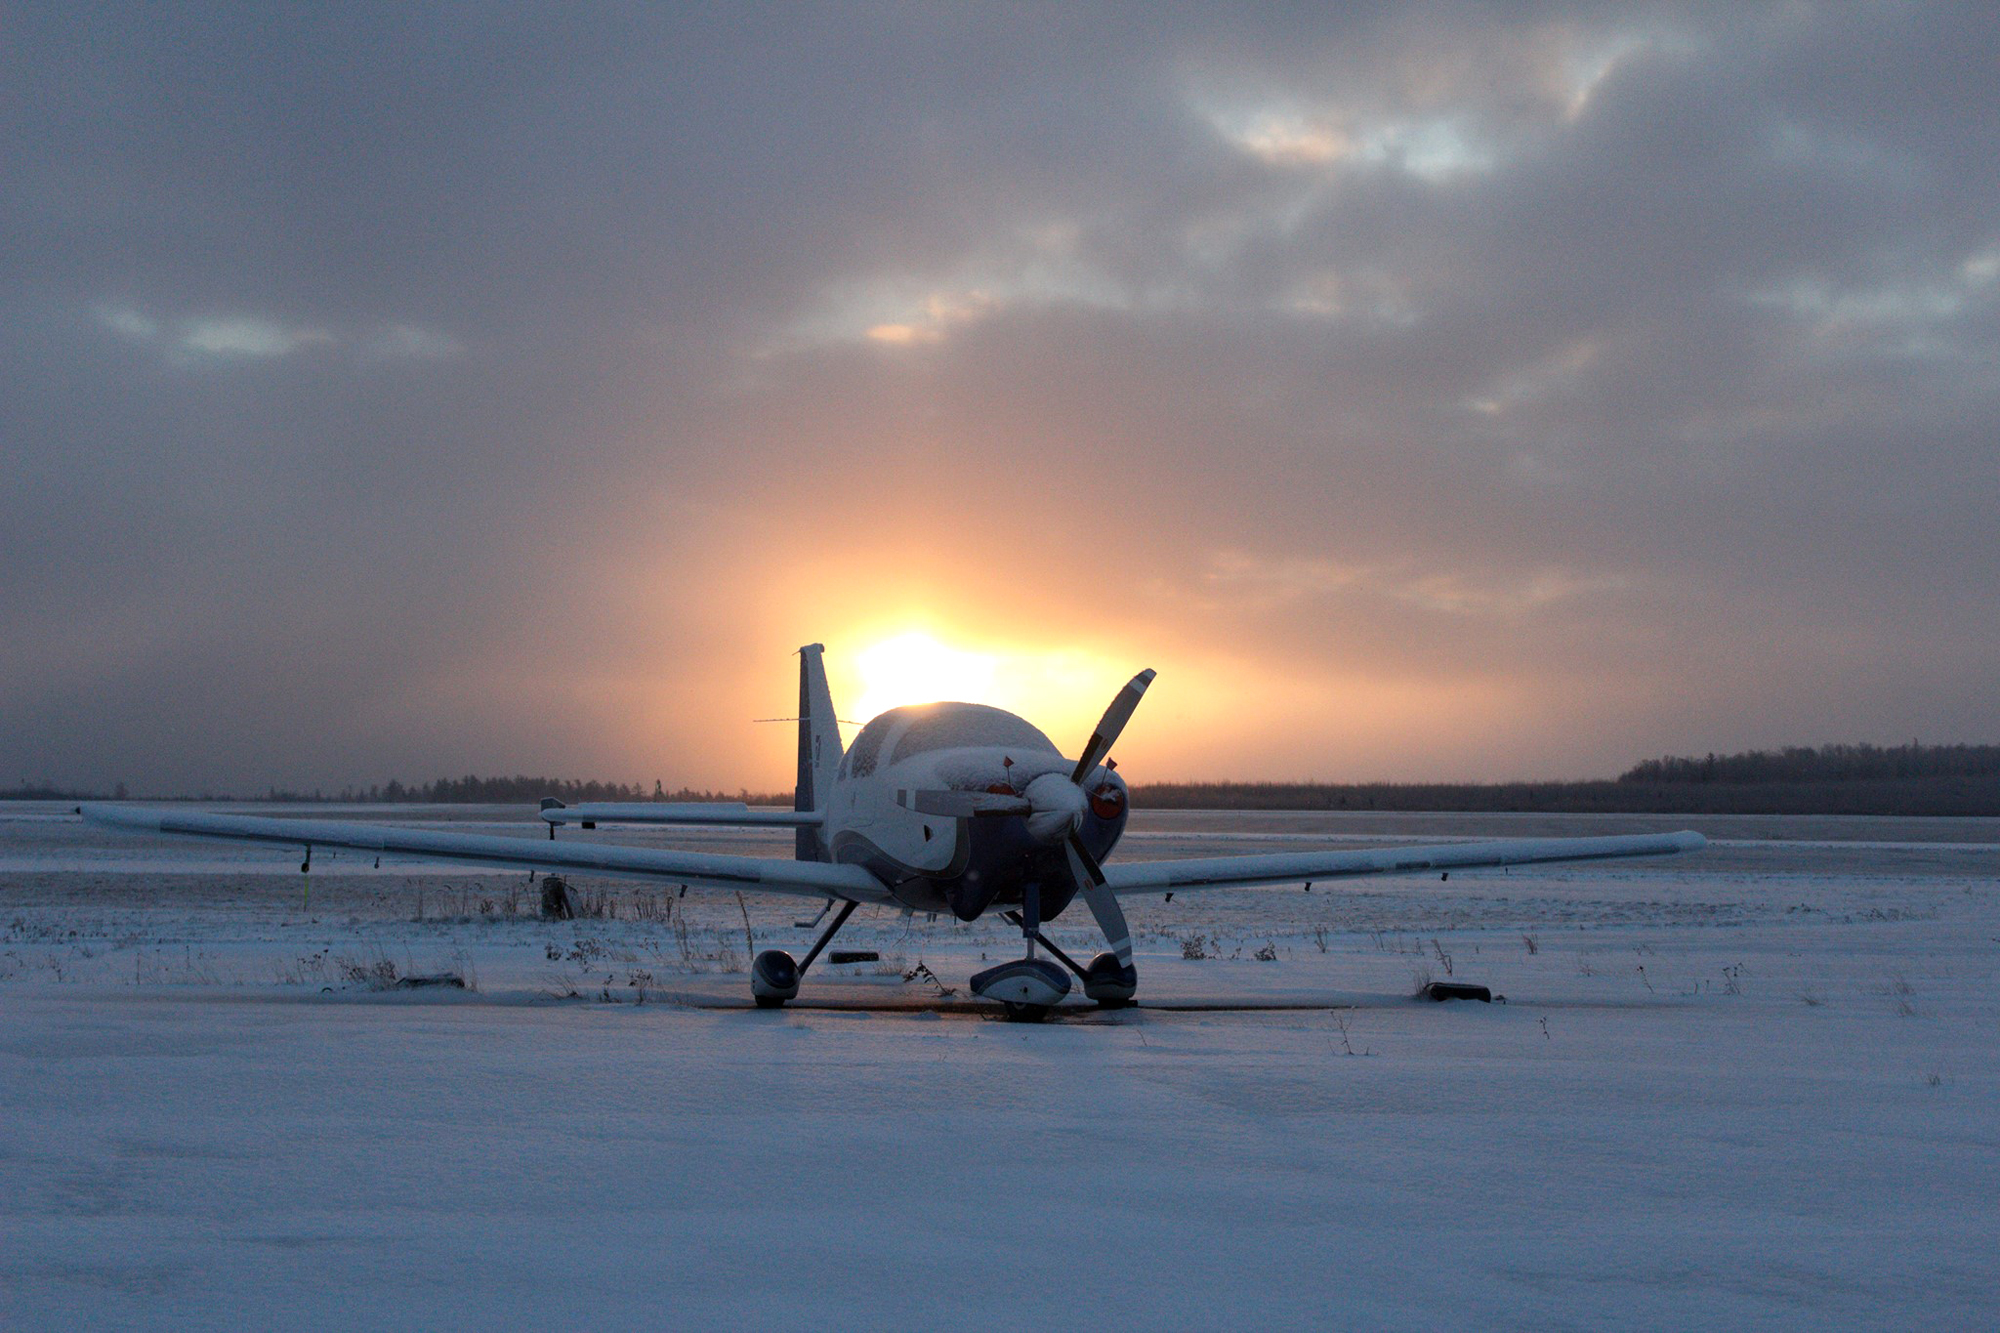 Cotten's Cessna parked at the Truro Flying Club near Halifax. (Denyse Sibley)